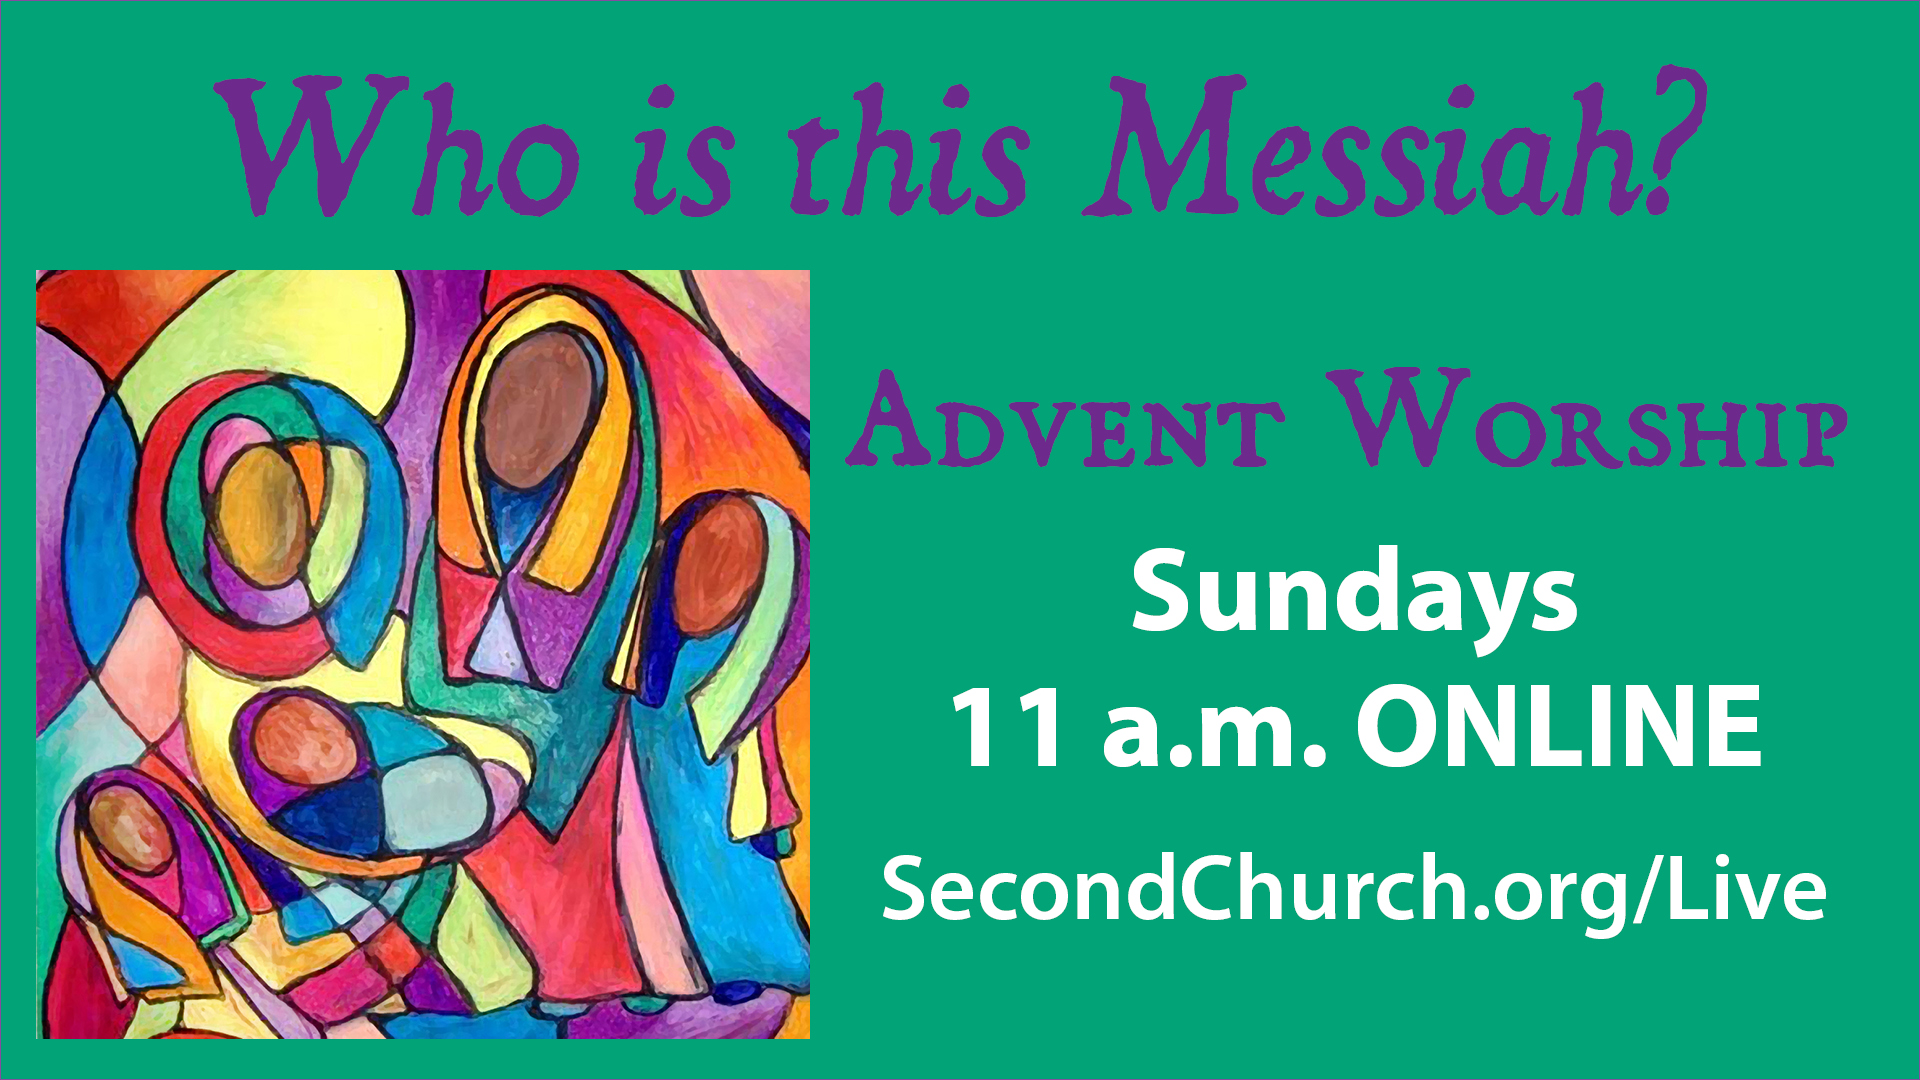 Sunday Worship in Advent